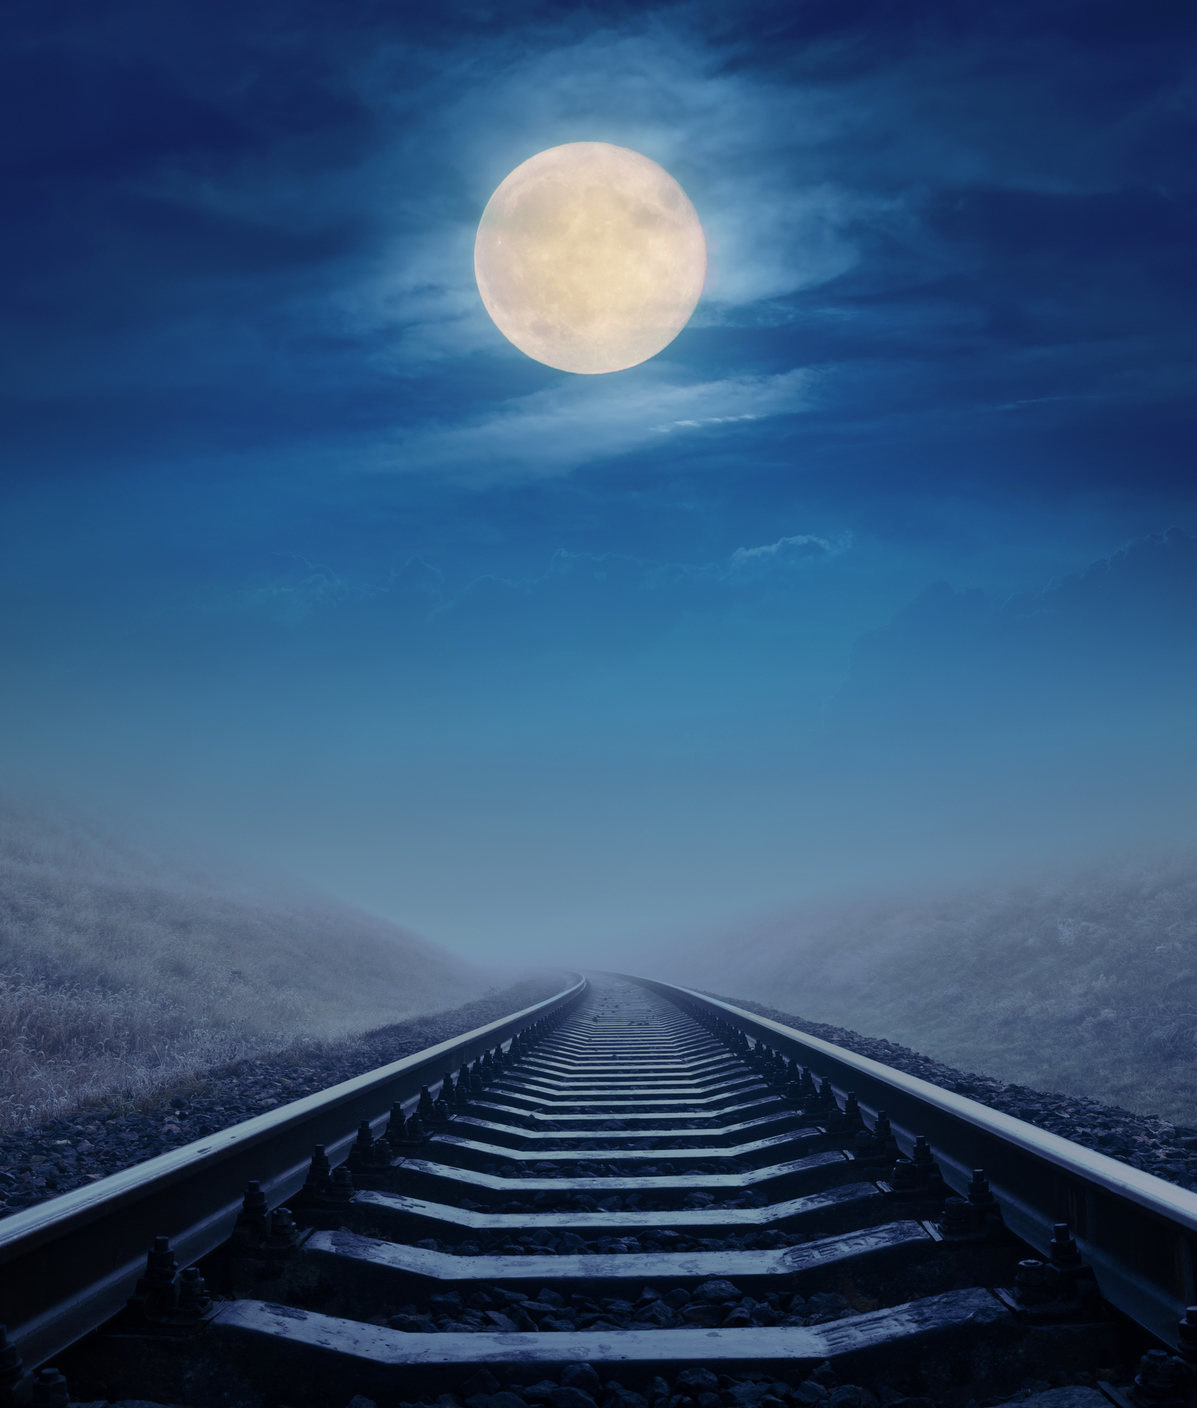 Full moon in clouds over railroad